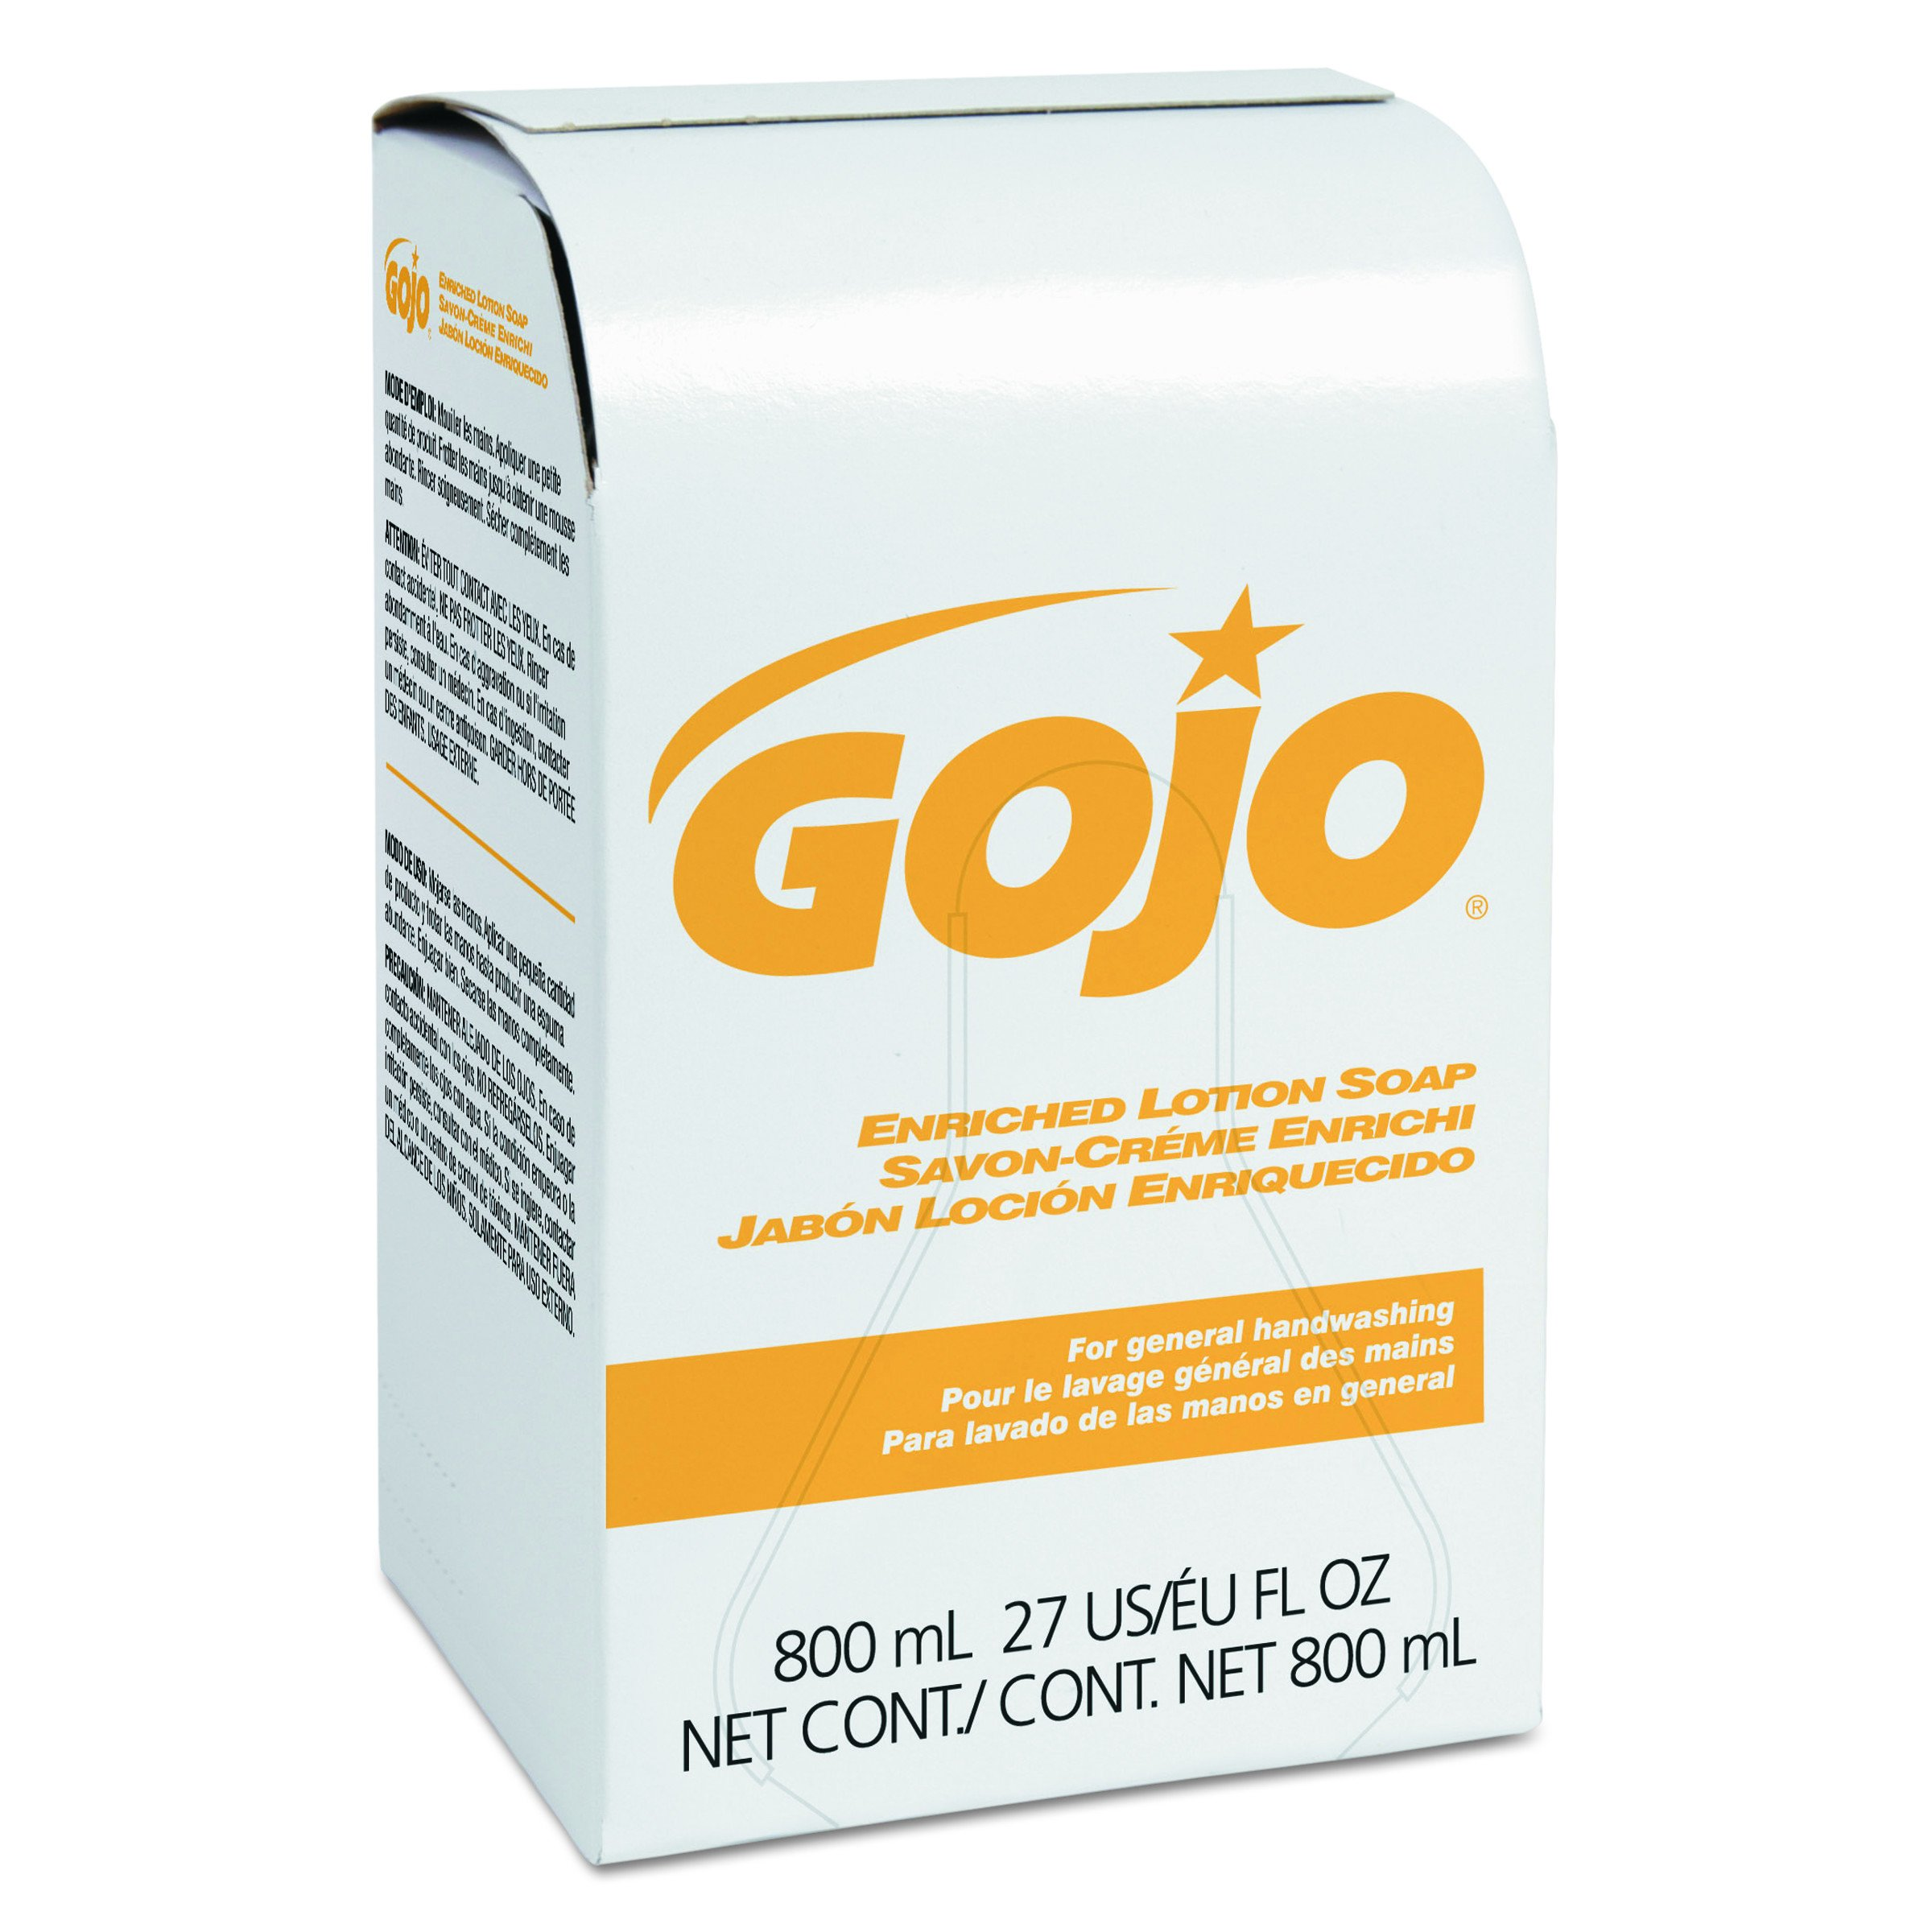 GOJO 910212CT Enriched Lotion Soap Bag-in-Box Refill, Herbal Floral, 800 mL (Case of 12)